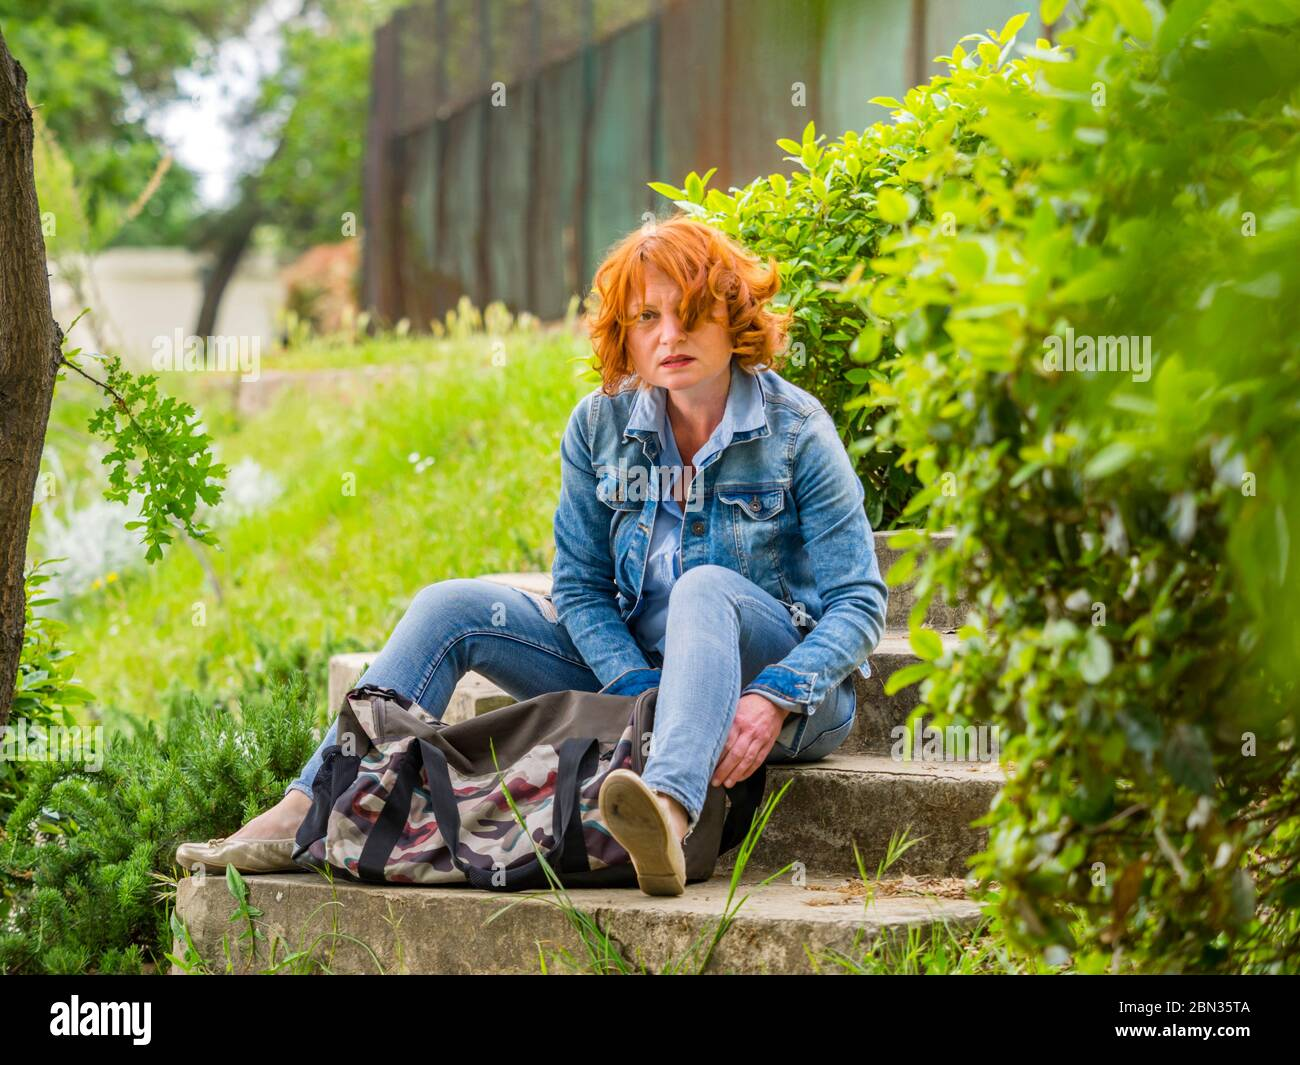 Good-looking ginger hair curly curls redhaired redhair midadult woman outdoors seated with handbag bag in front resting serious eyeshot Stock Photo